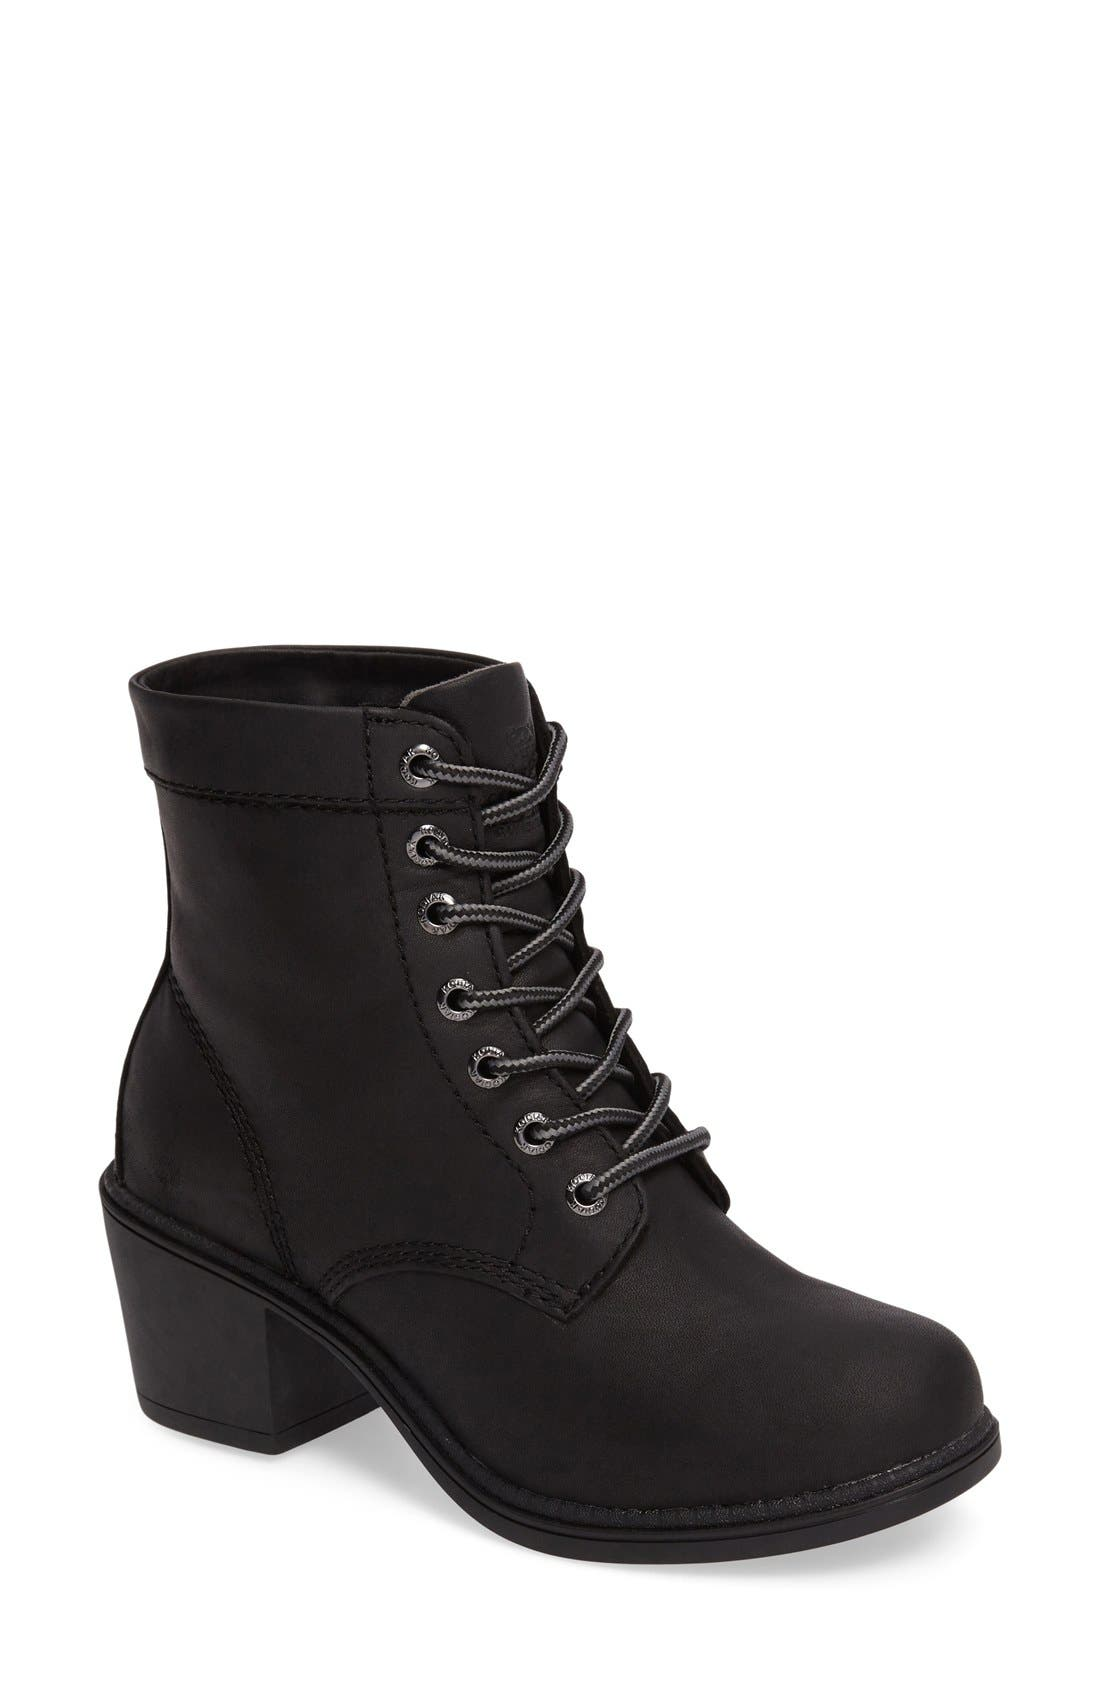 Claire Waterproof Bootie,                         Main,                         color, Black Leather